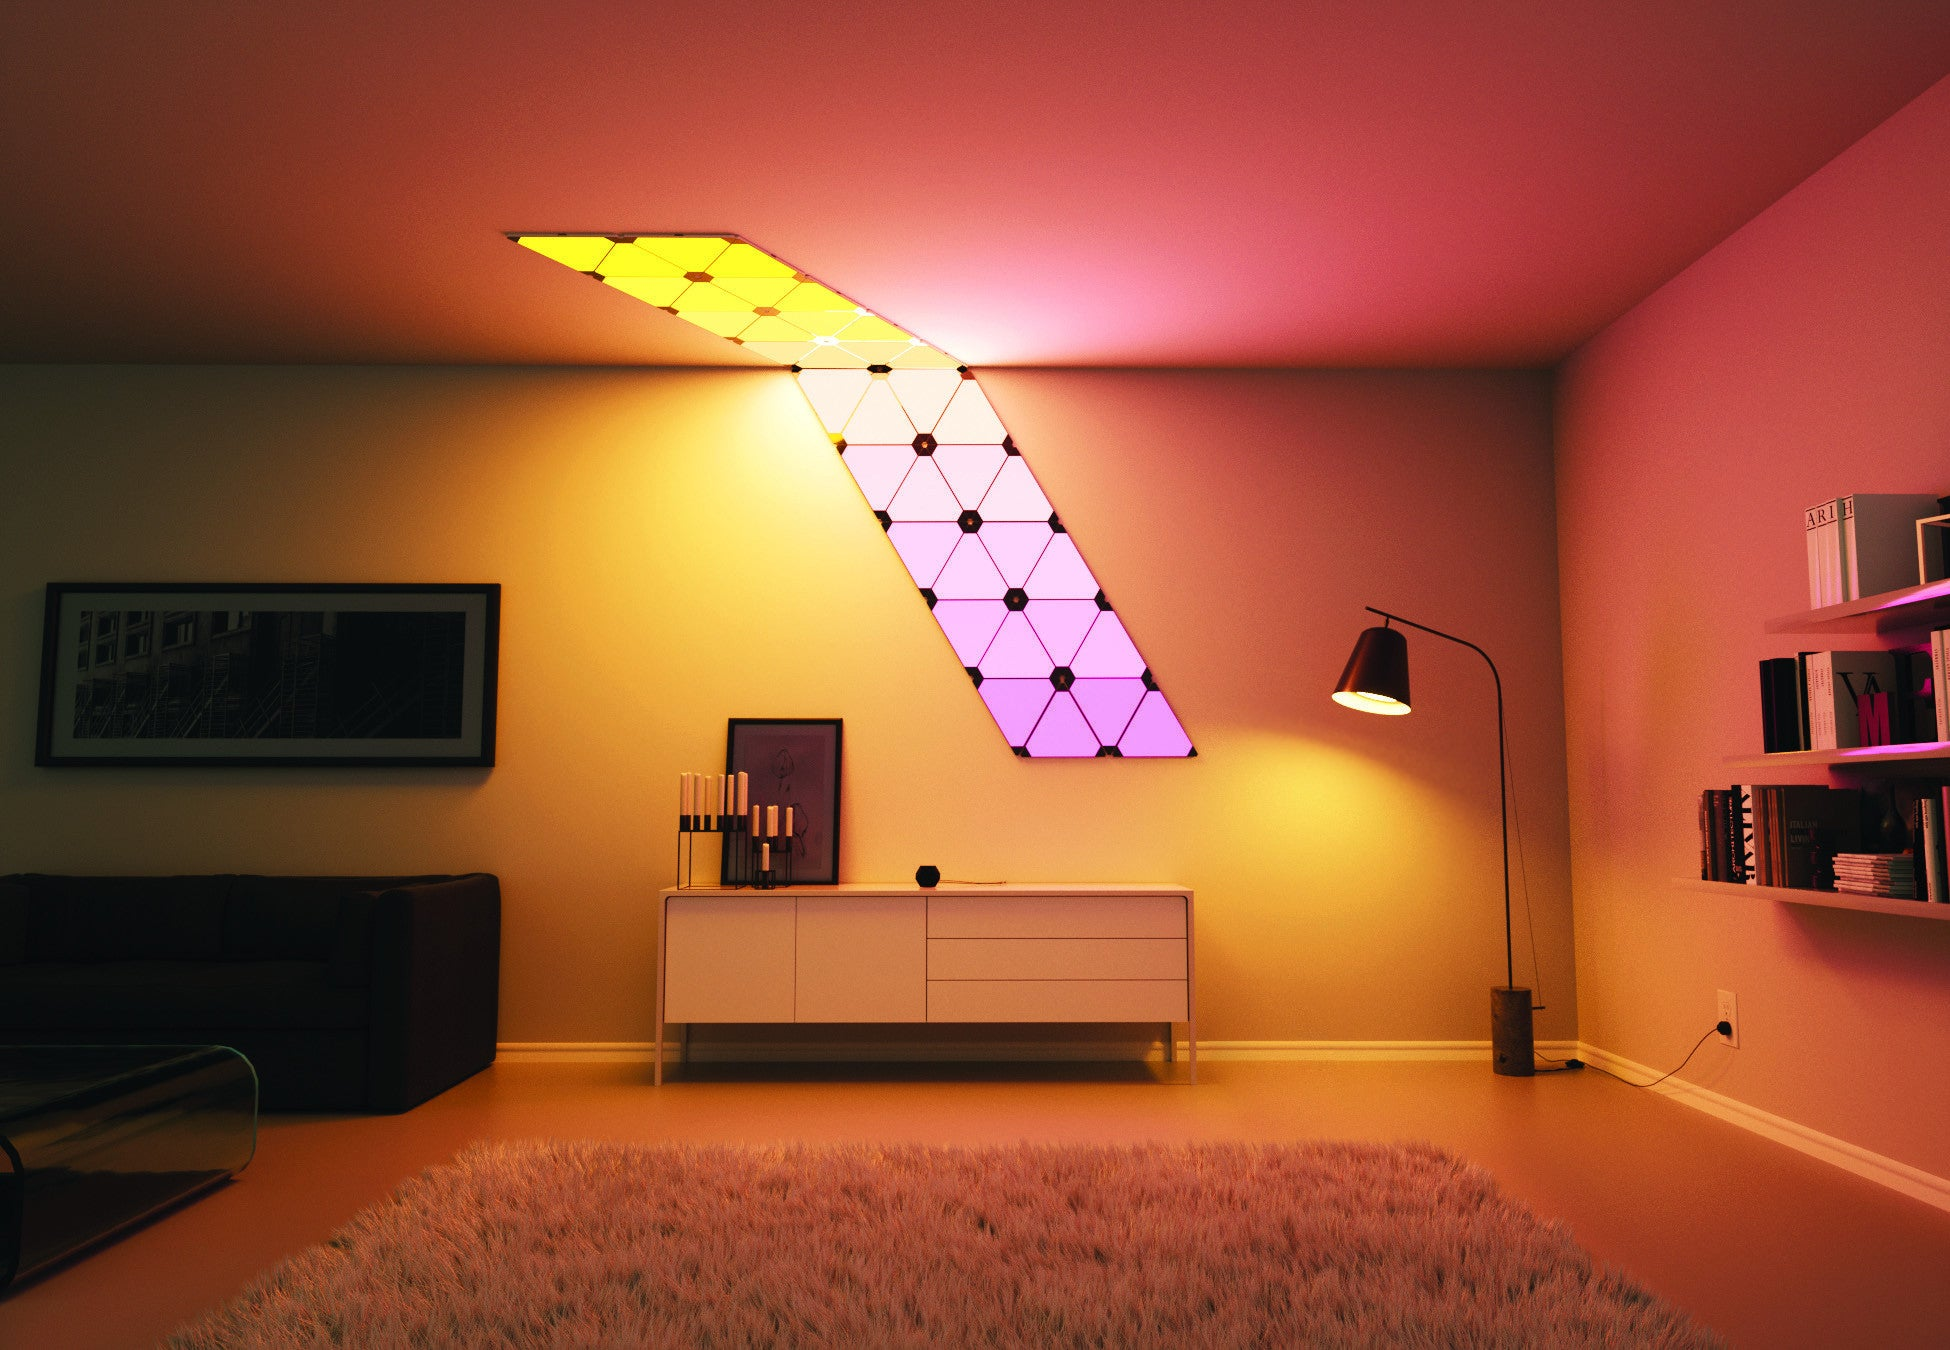 Nanoleaf Aurora India, It's the light for you- Color it, Now in India, Nanoleaf Aurora, Aurora, Revolutionary mood lights, Mood lighting, color lights, light panels, Play with colors, Make walls your canvas, Light creativity